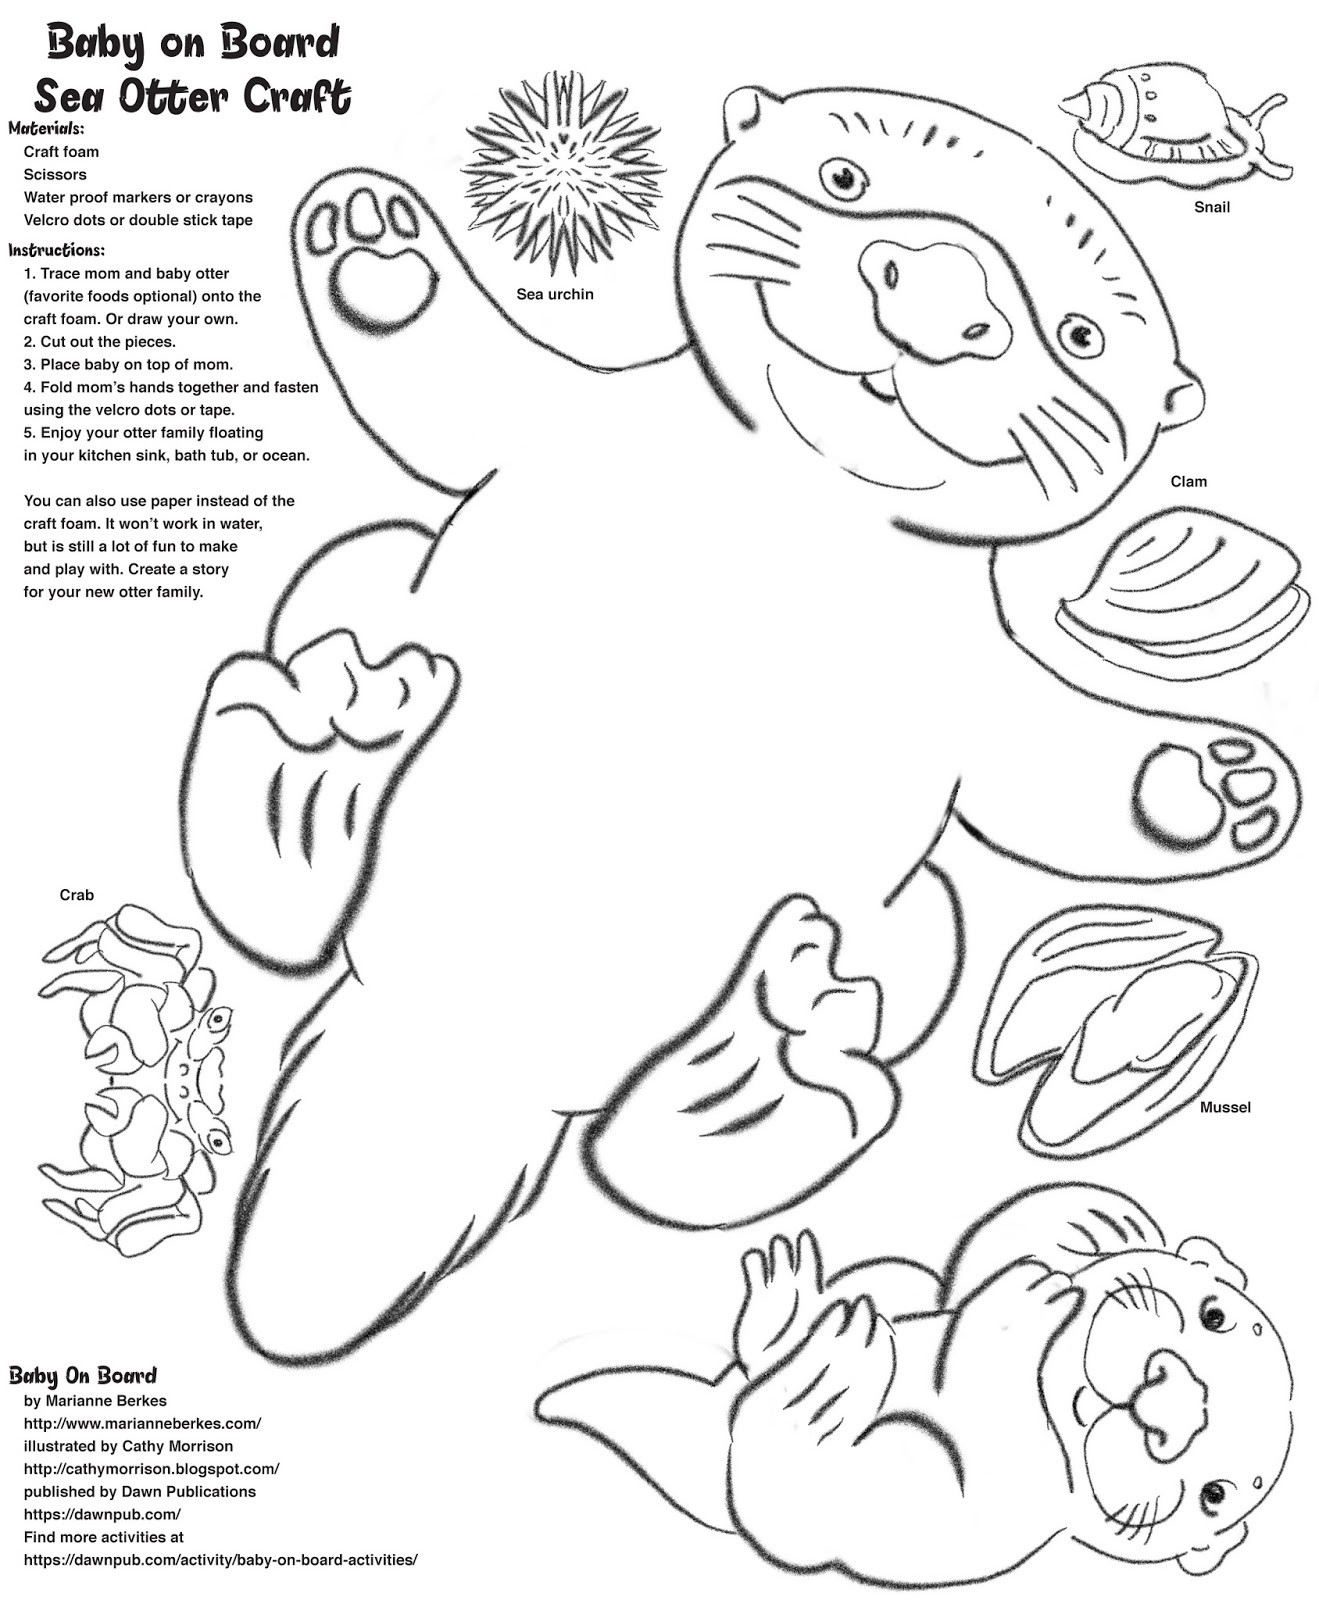 Duke Basketball Coloring Pages At Getcolorings